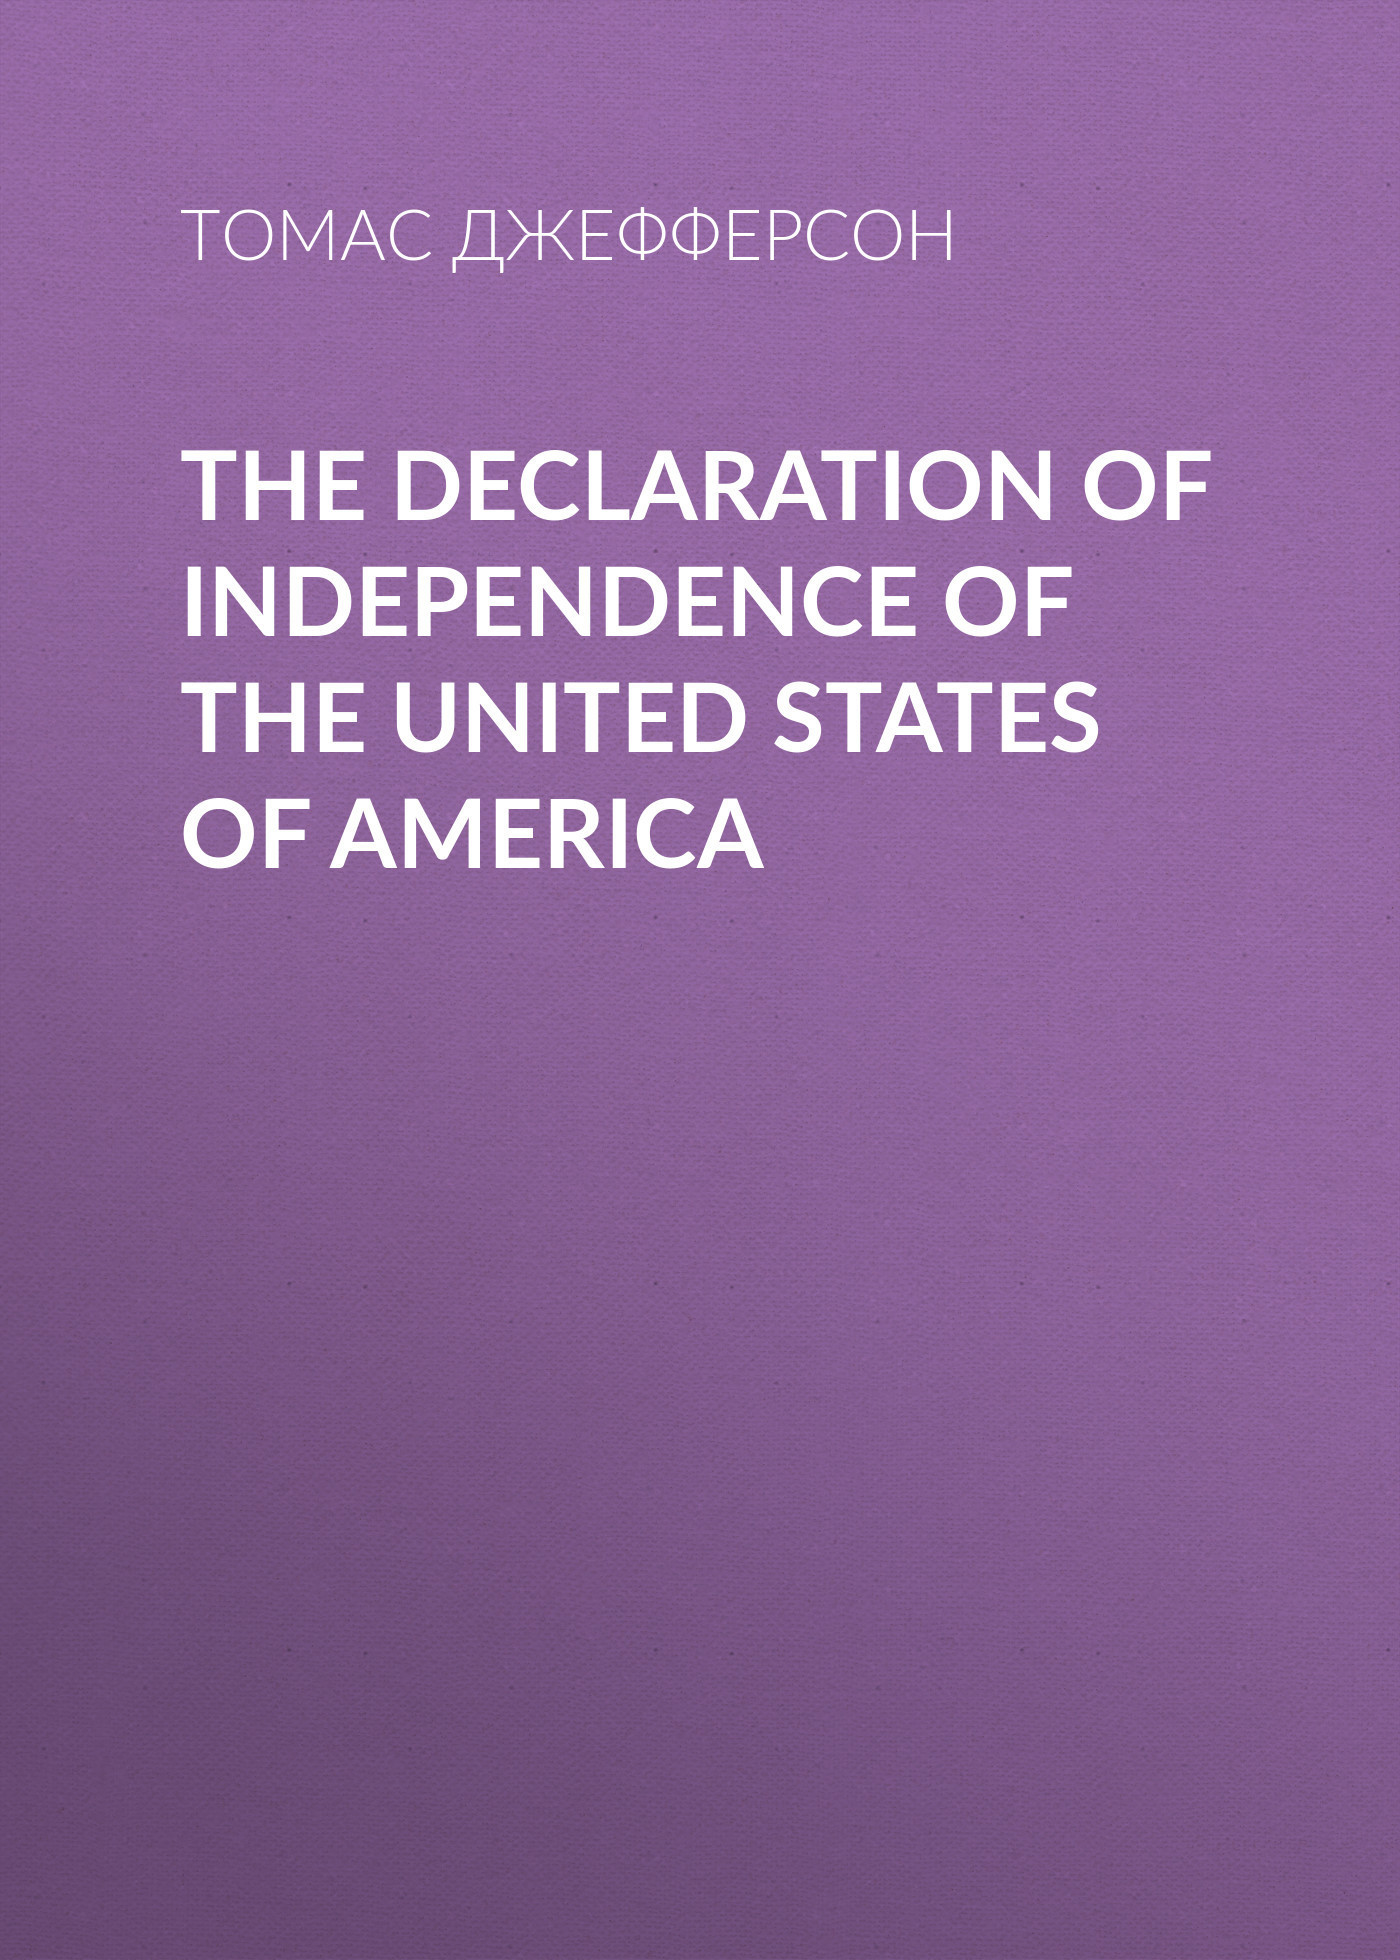 Томас Джефферсон The Declaration of Independence of the United States of America шкаф для ванной the united states housing